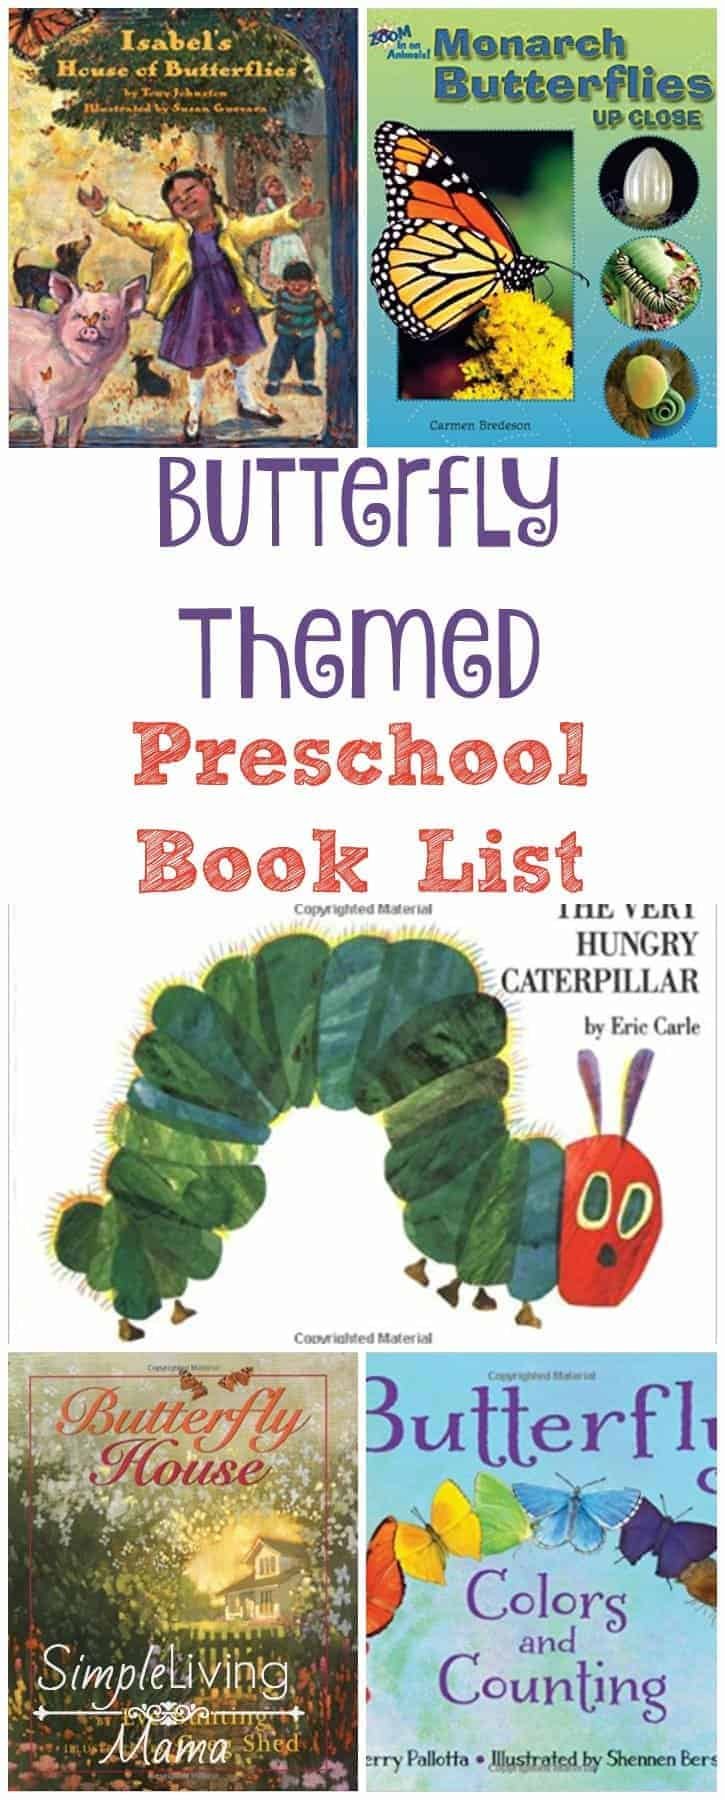 Butterfly themed preschool book list